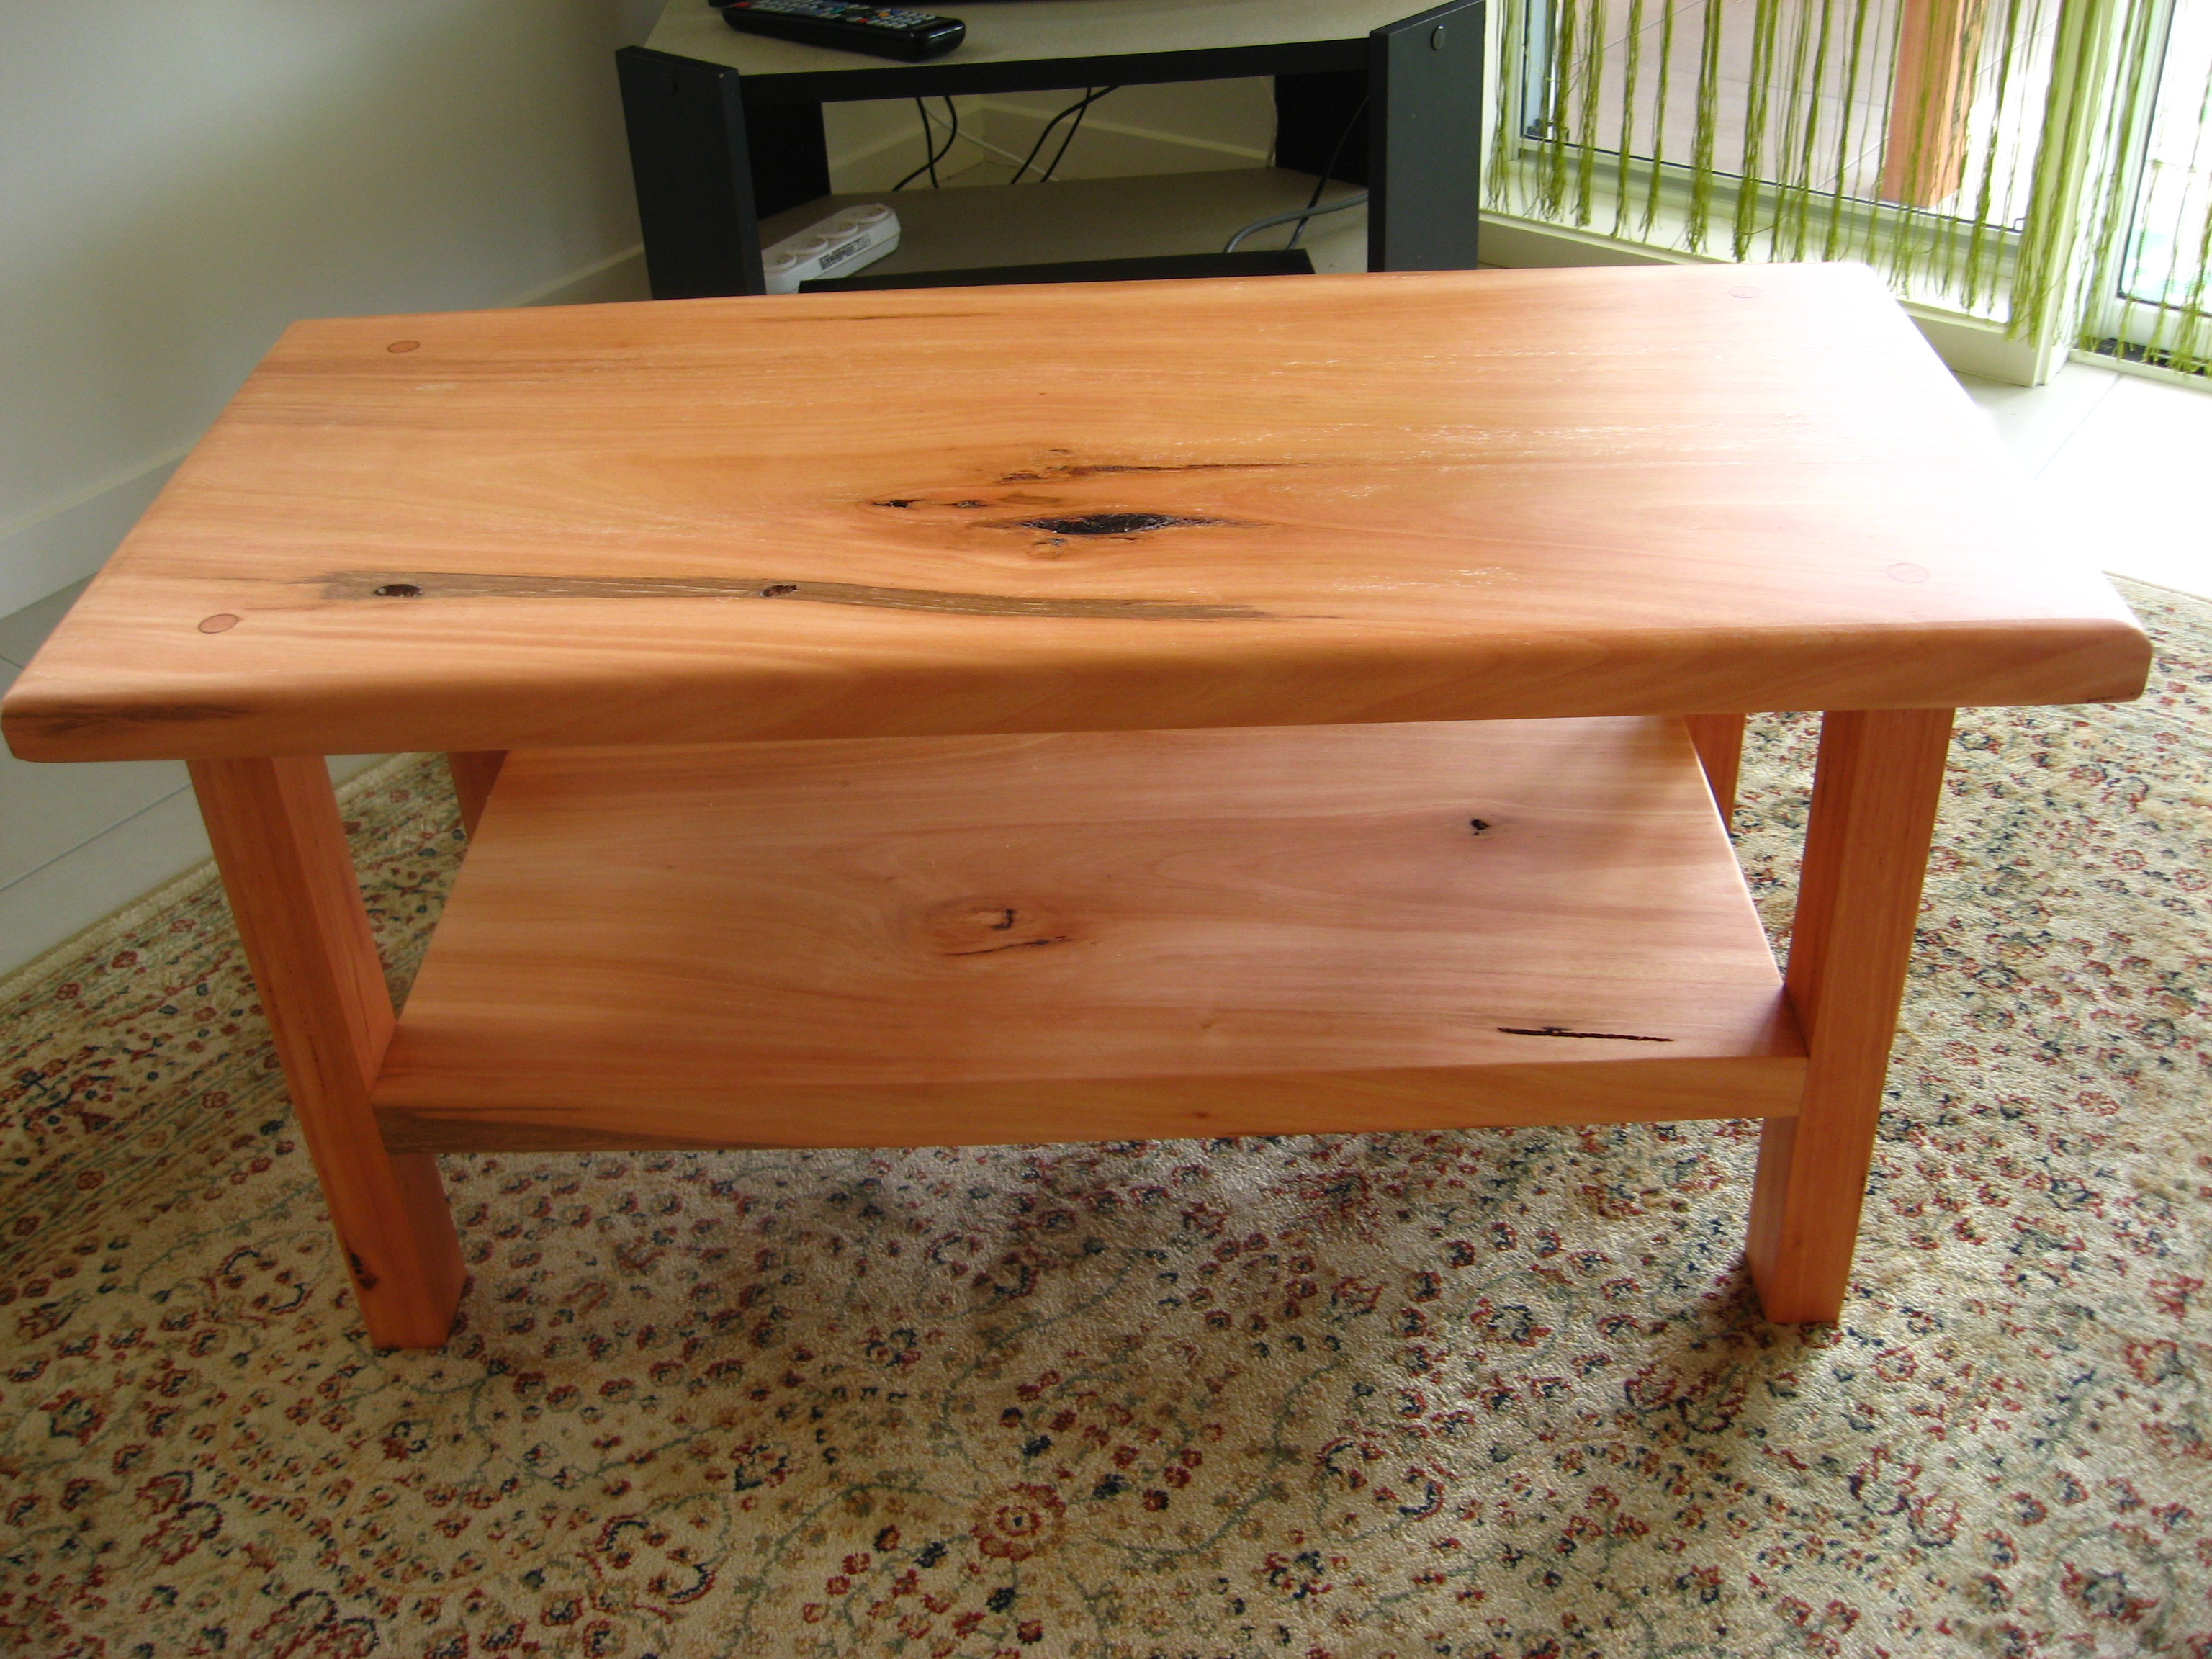 wooden coffee table designs photo - 1